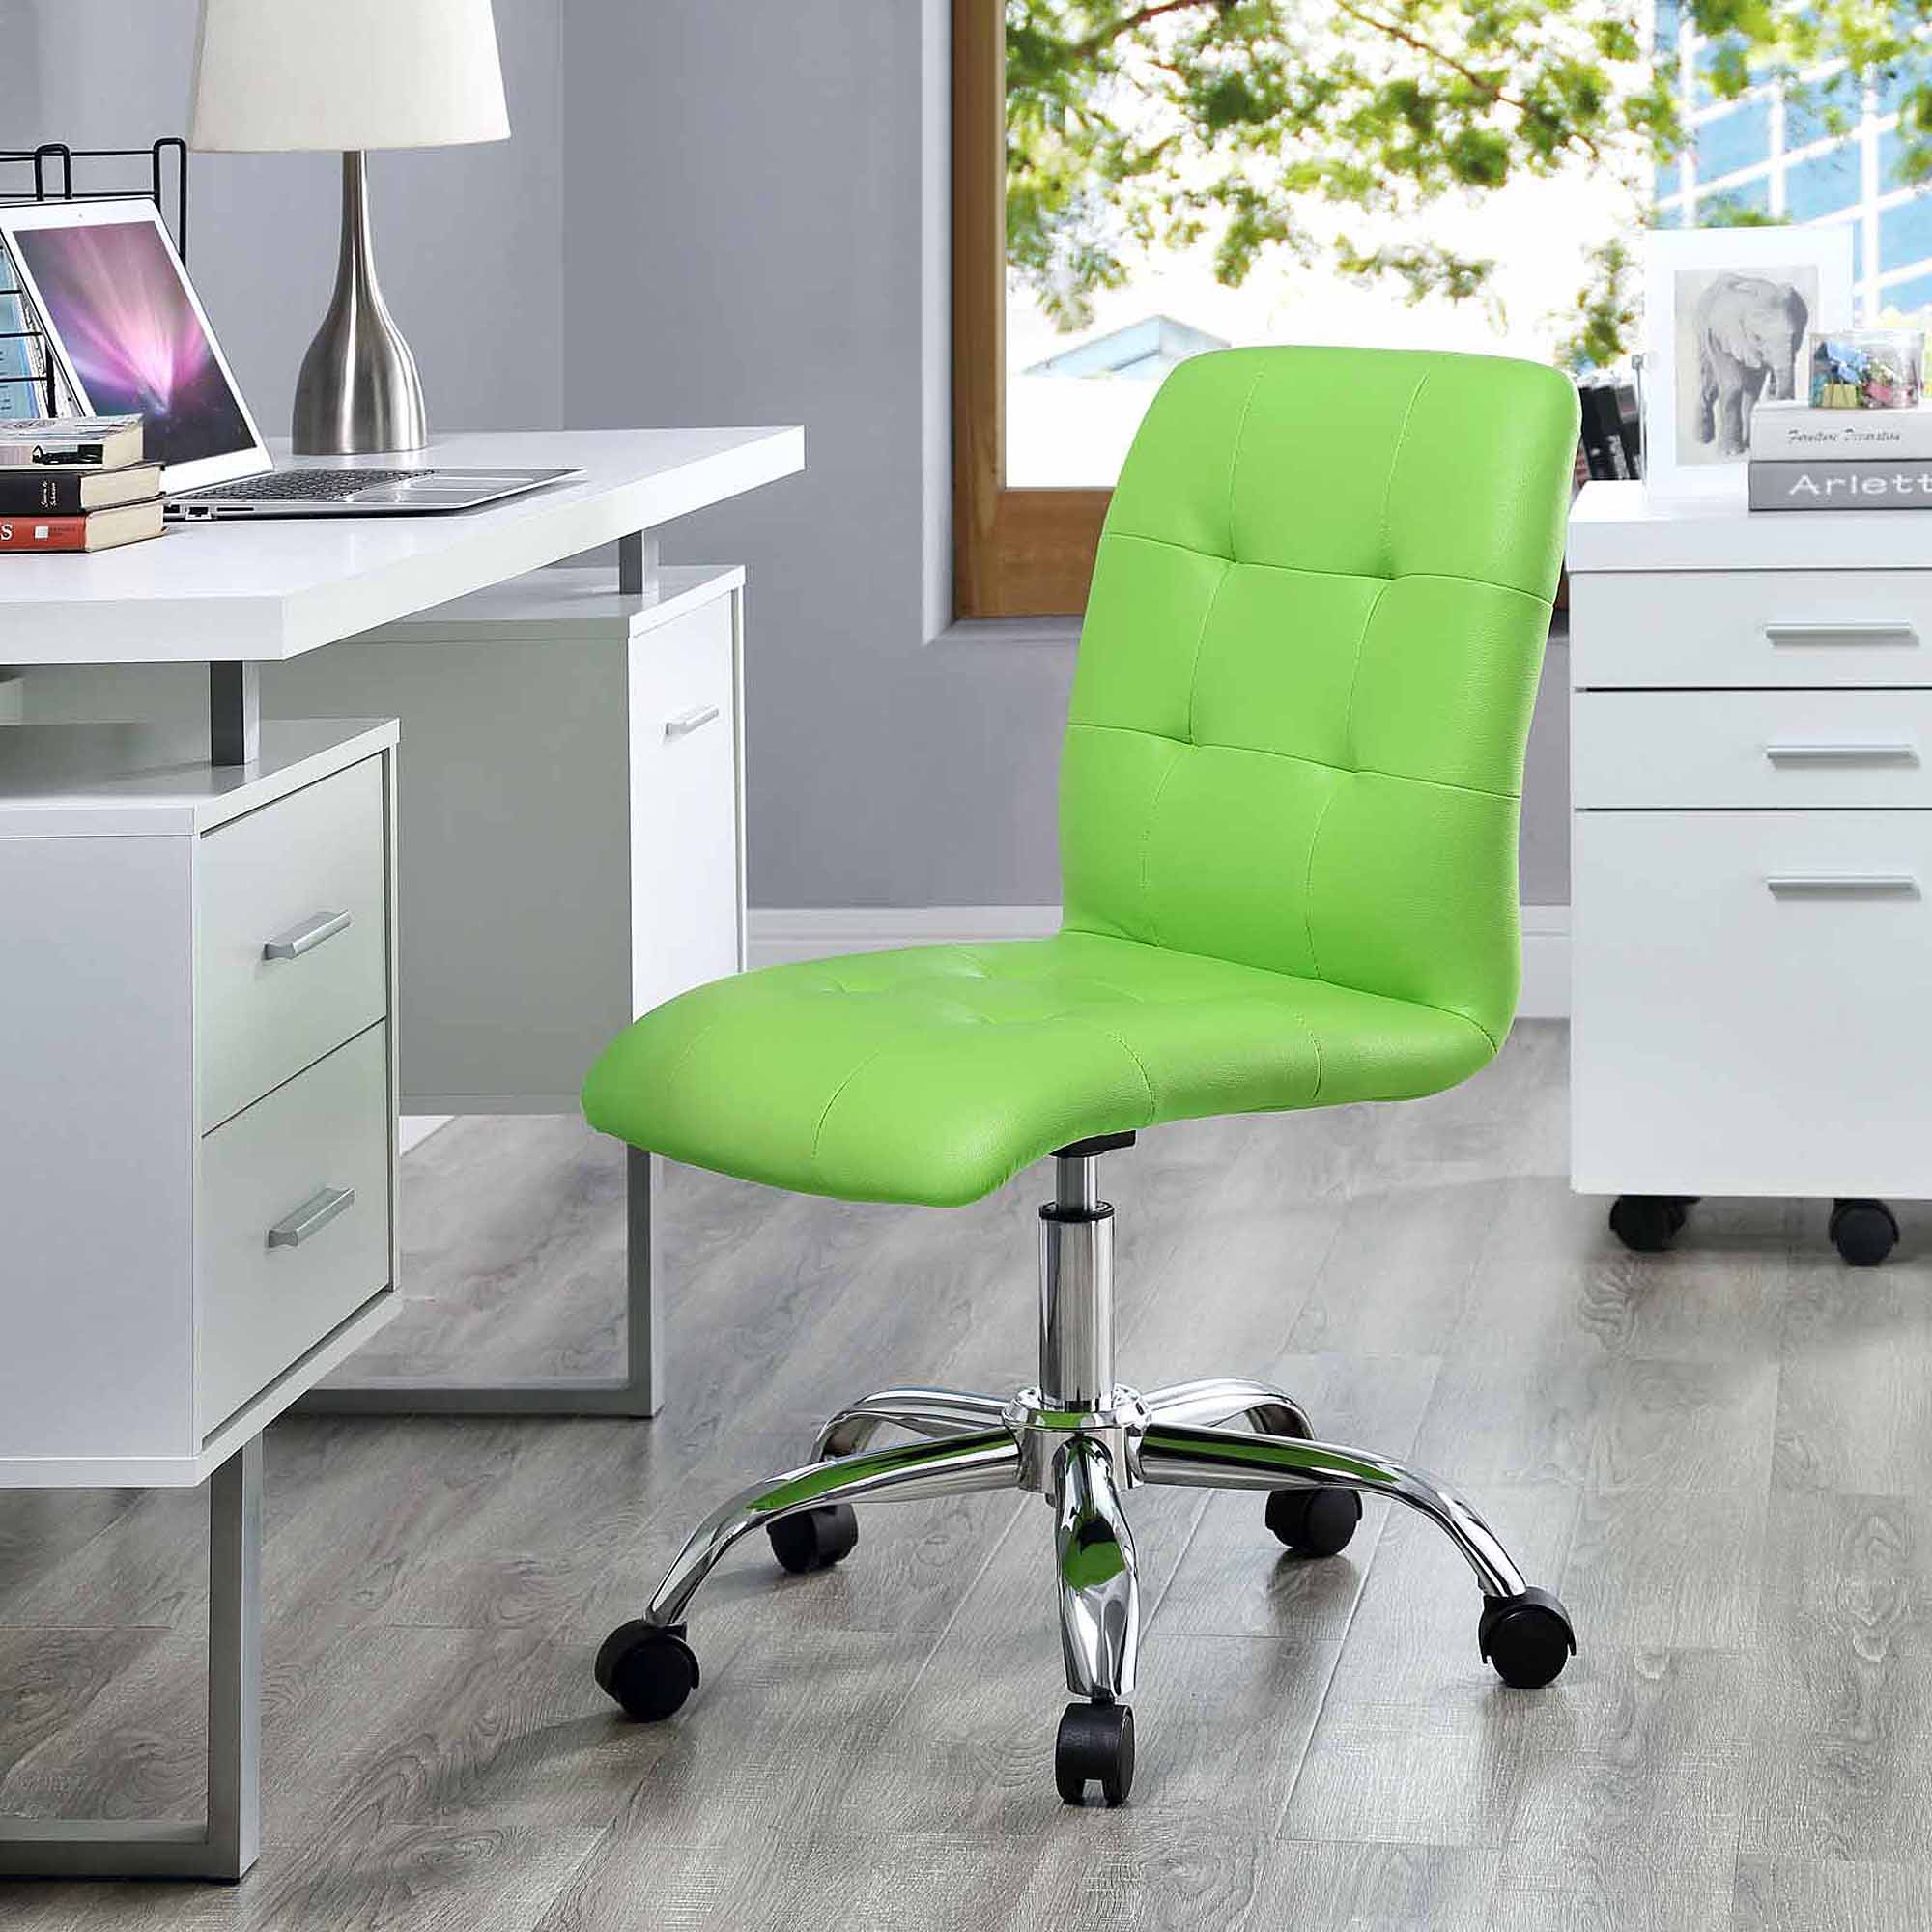 Modway Prim Armless Midback Leatherette Office Chair, Multiple Colors